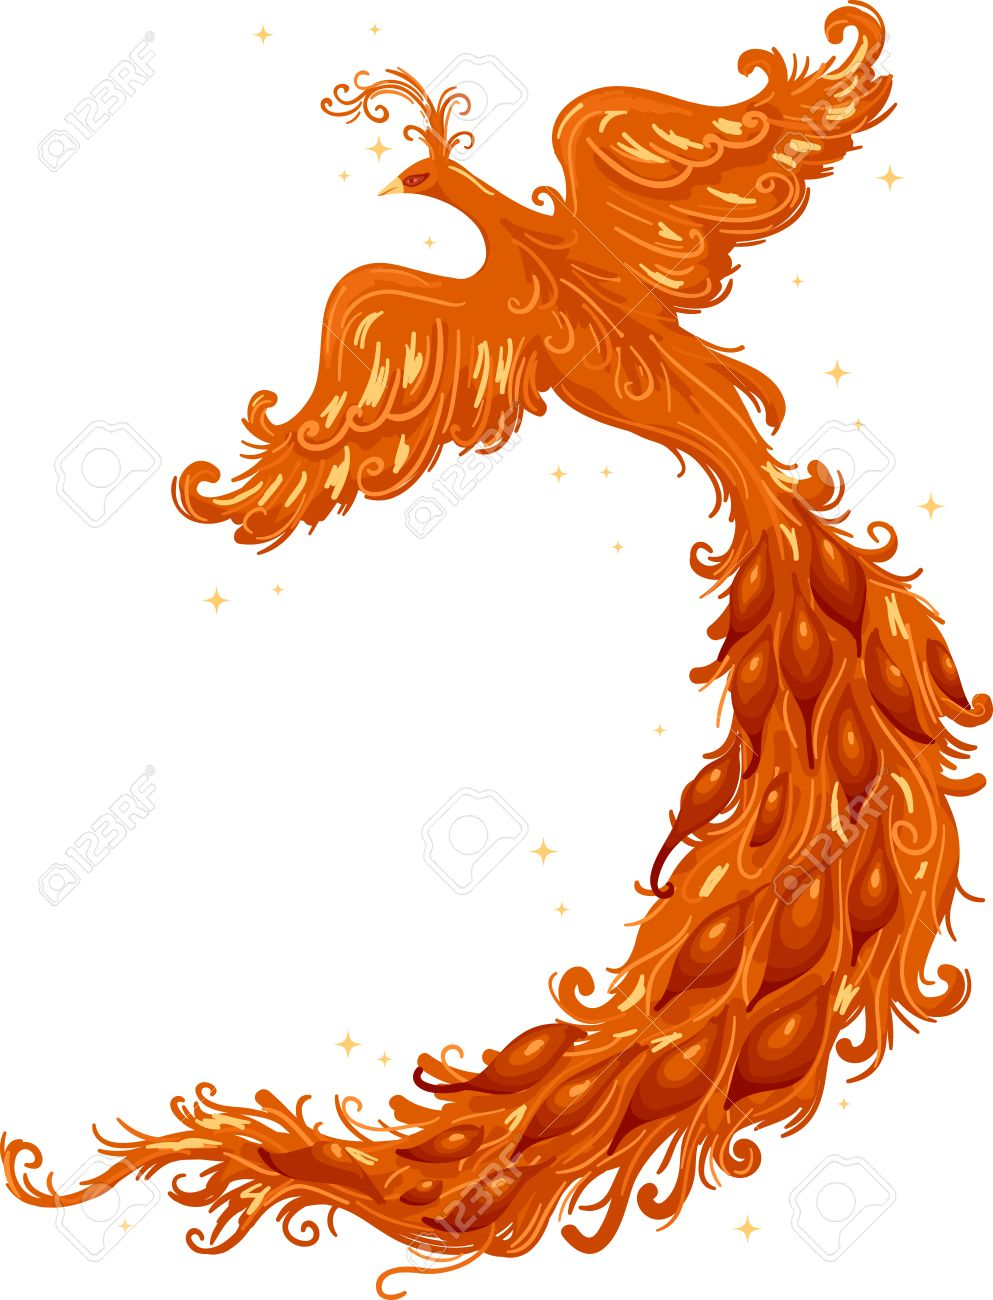 cutout illustration of a firebird with a majestic tail stock photo